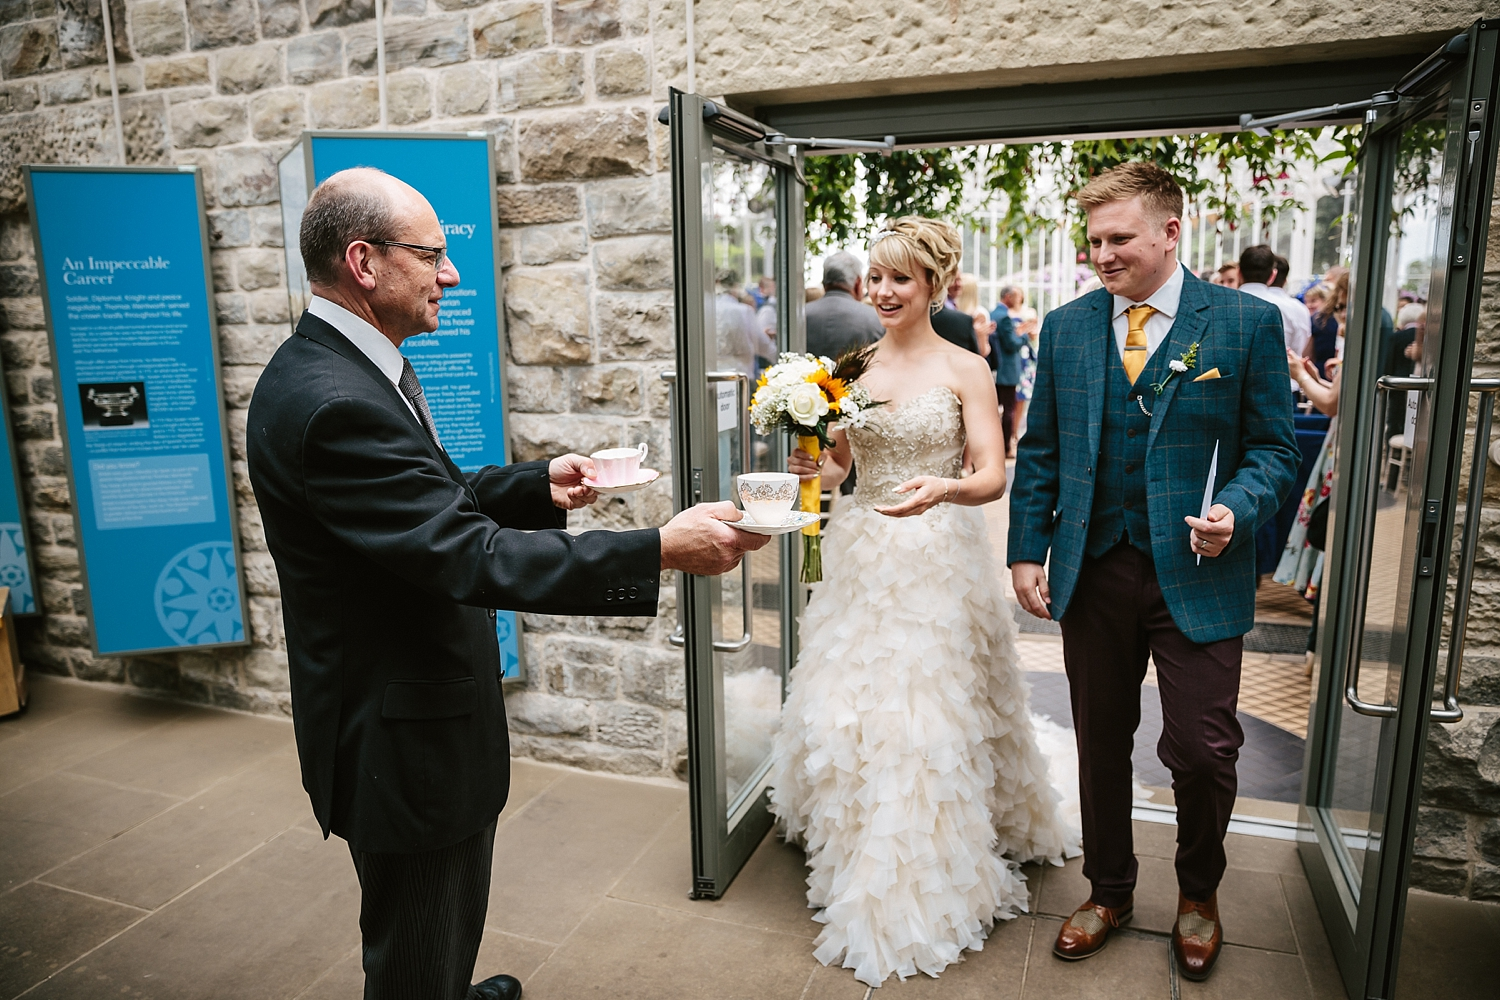 Natlie-Matthew-yorkshire-natural-relaxed-fun-documentary-reportage-candid-wedding-photography-photographer-Derby-Nottingham-Derbyshire-Nottinghamshire-Leicestershire-Lincolnshire-East-Midlands-49.jpg